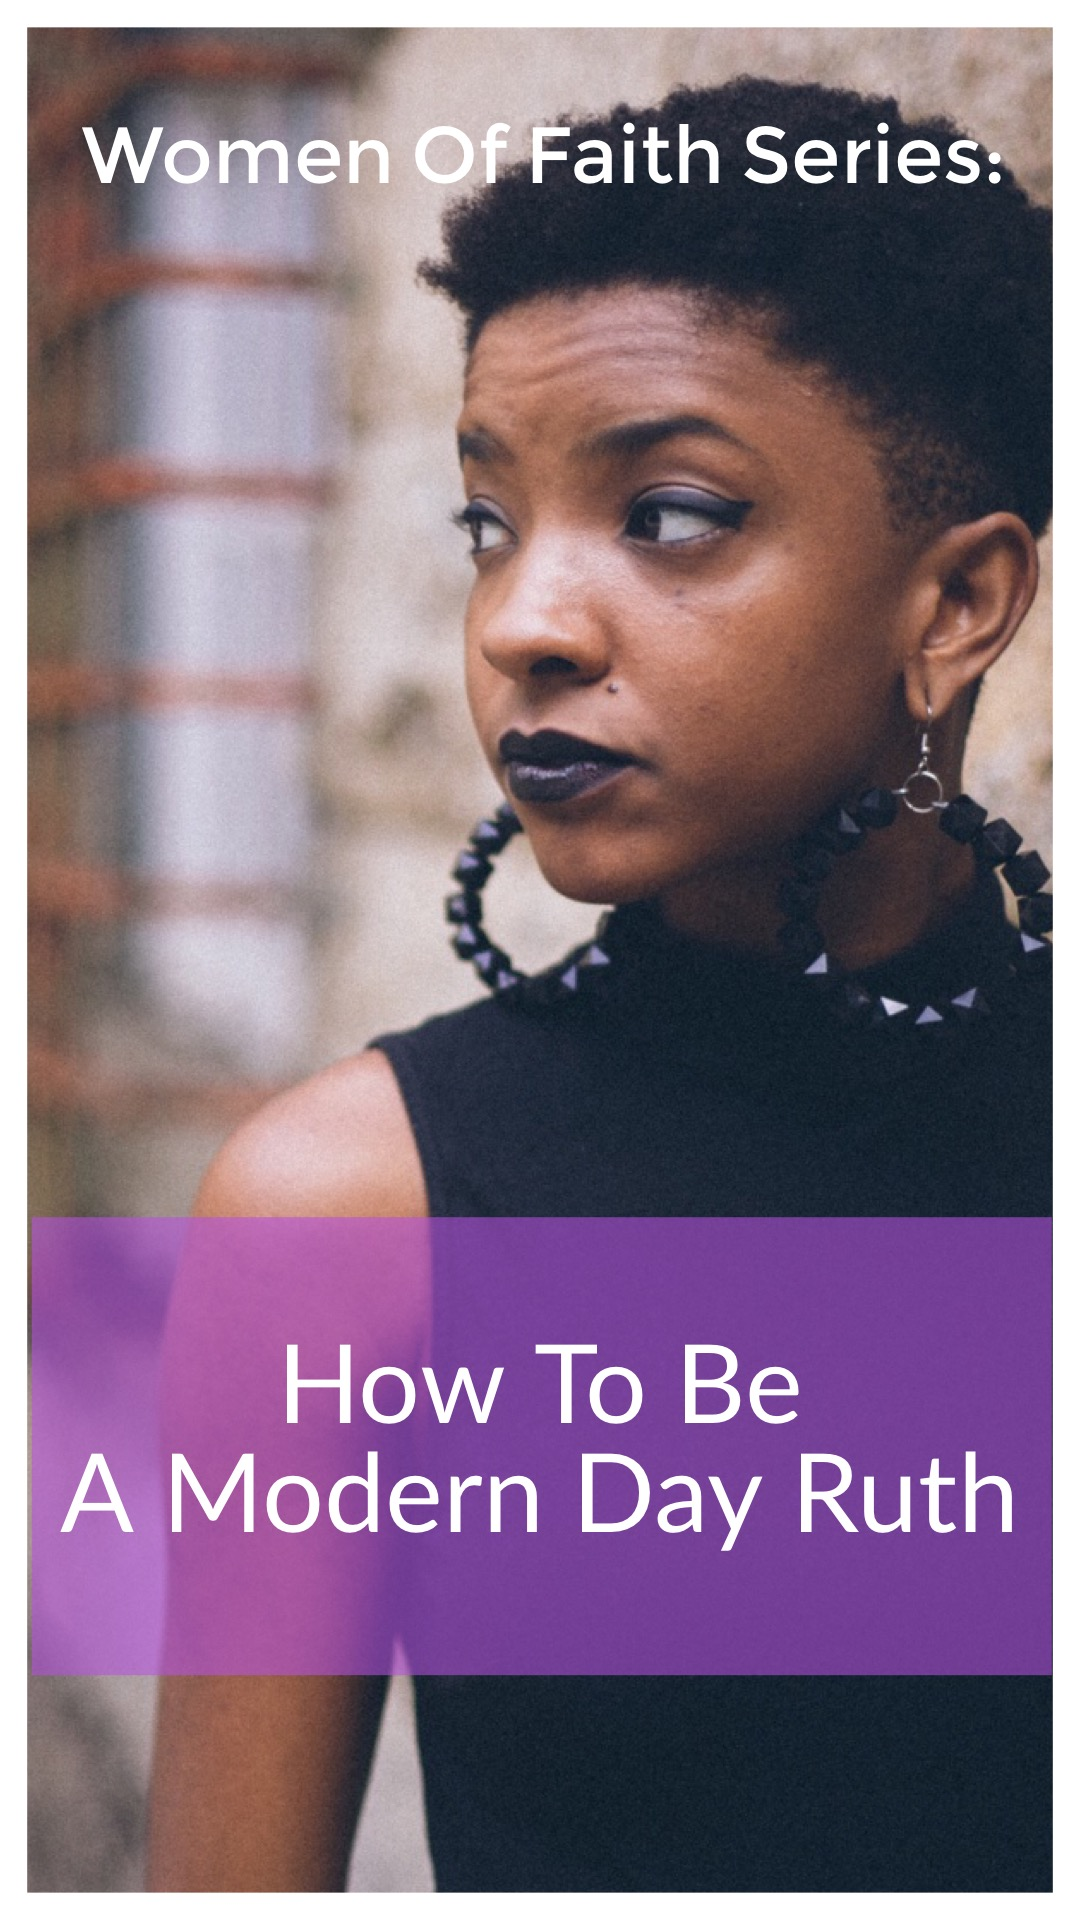 How To Be A Modern Day Ruth.JPG